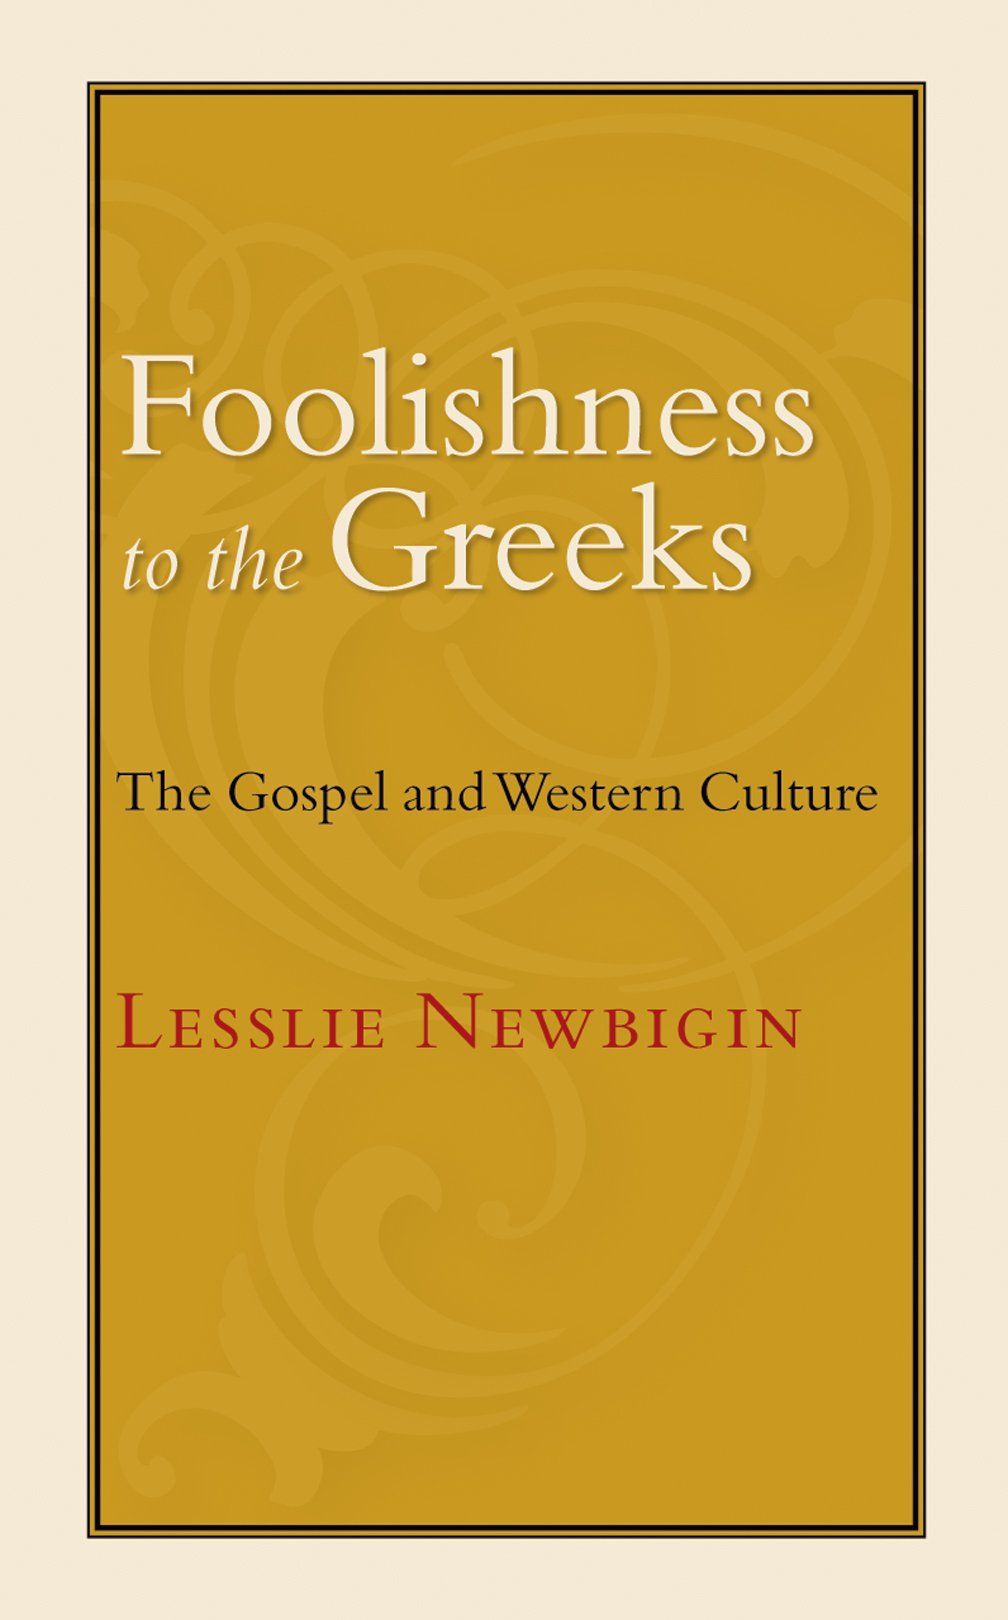 foolishness to the greeks - eerdmans.jpg